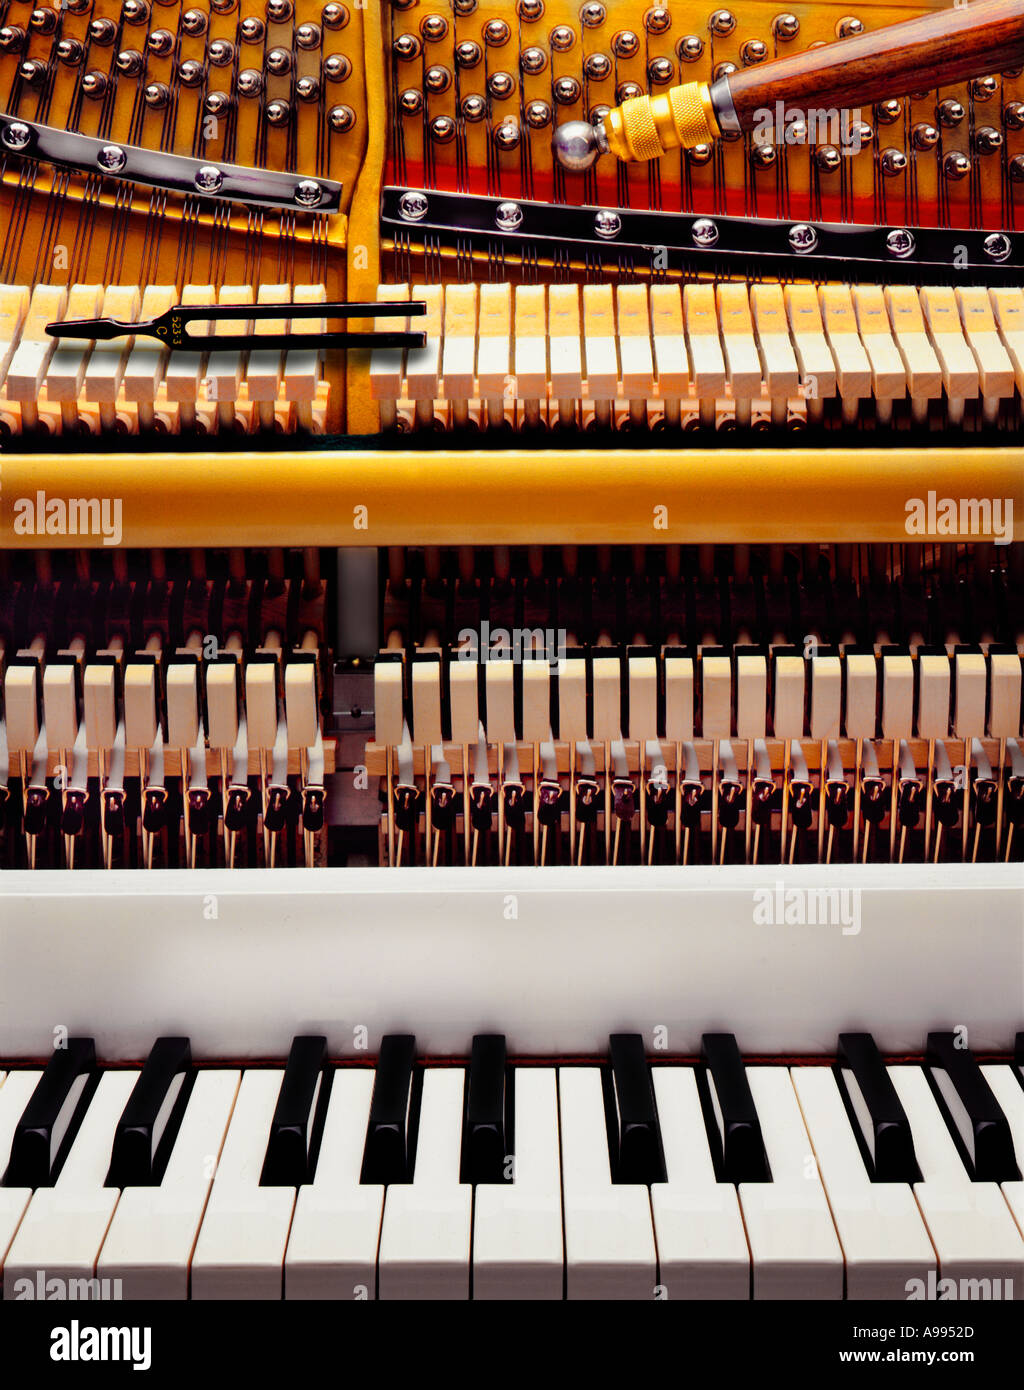 A piano keyboard and the inner workings and mechanisms of a piano - Stock Image